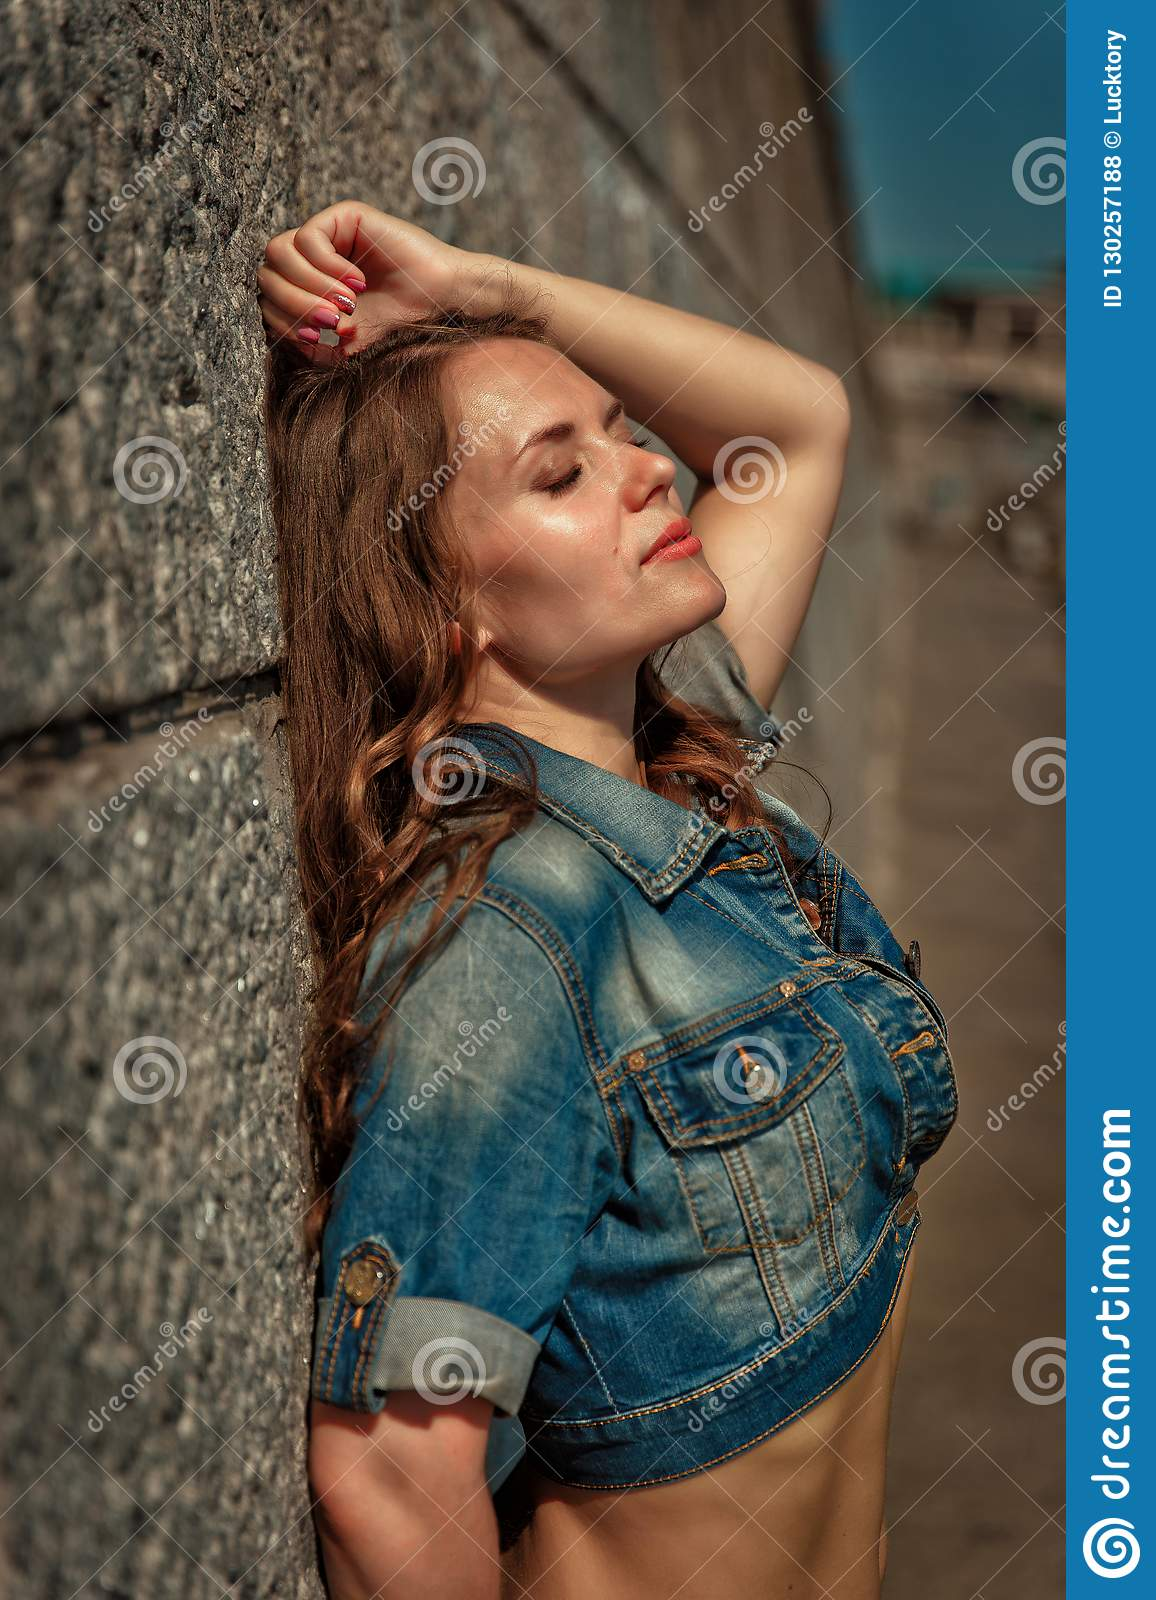 Beautiful Girl With Long Hair And In A Denim Jacket Stands Near The